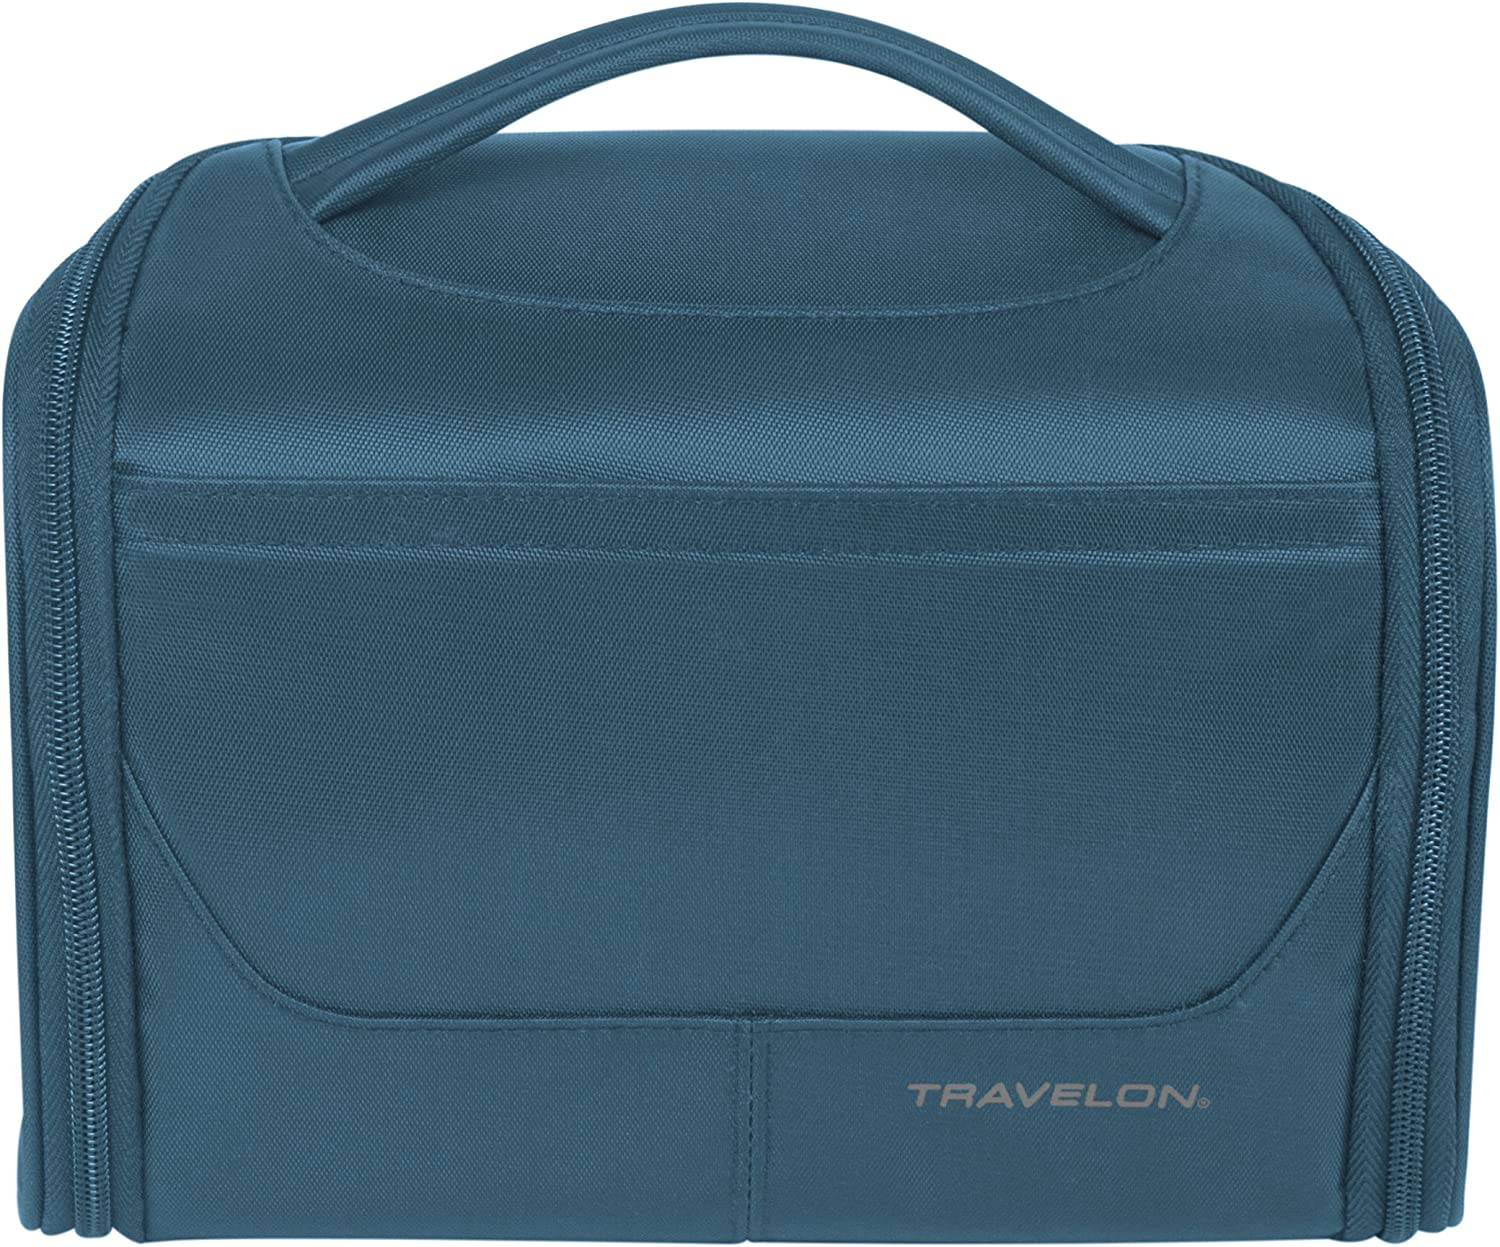 Travelon Weekend Edition Independence Bag Berry One Size